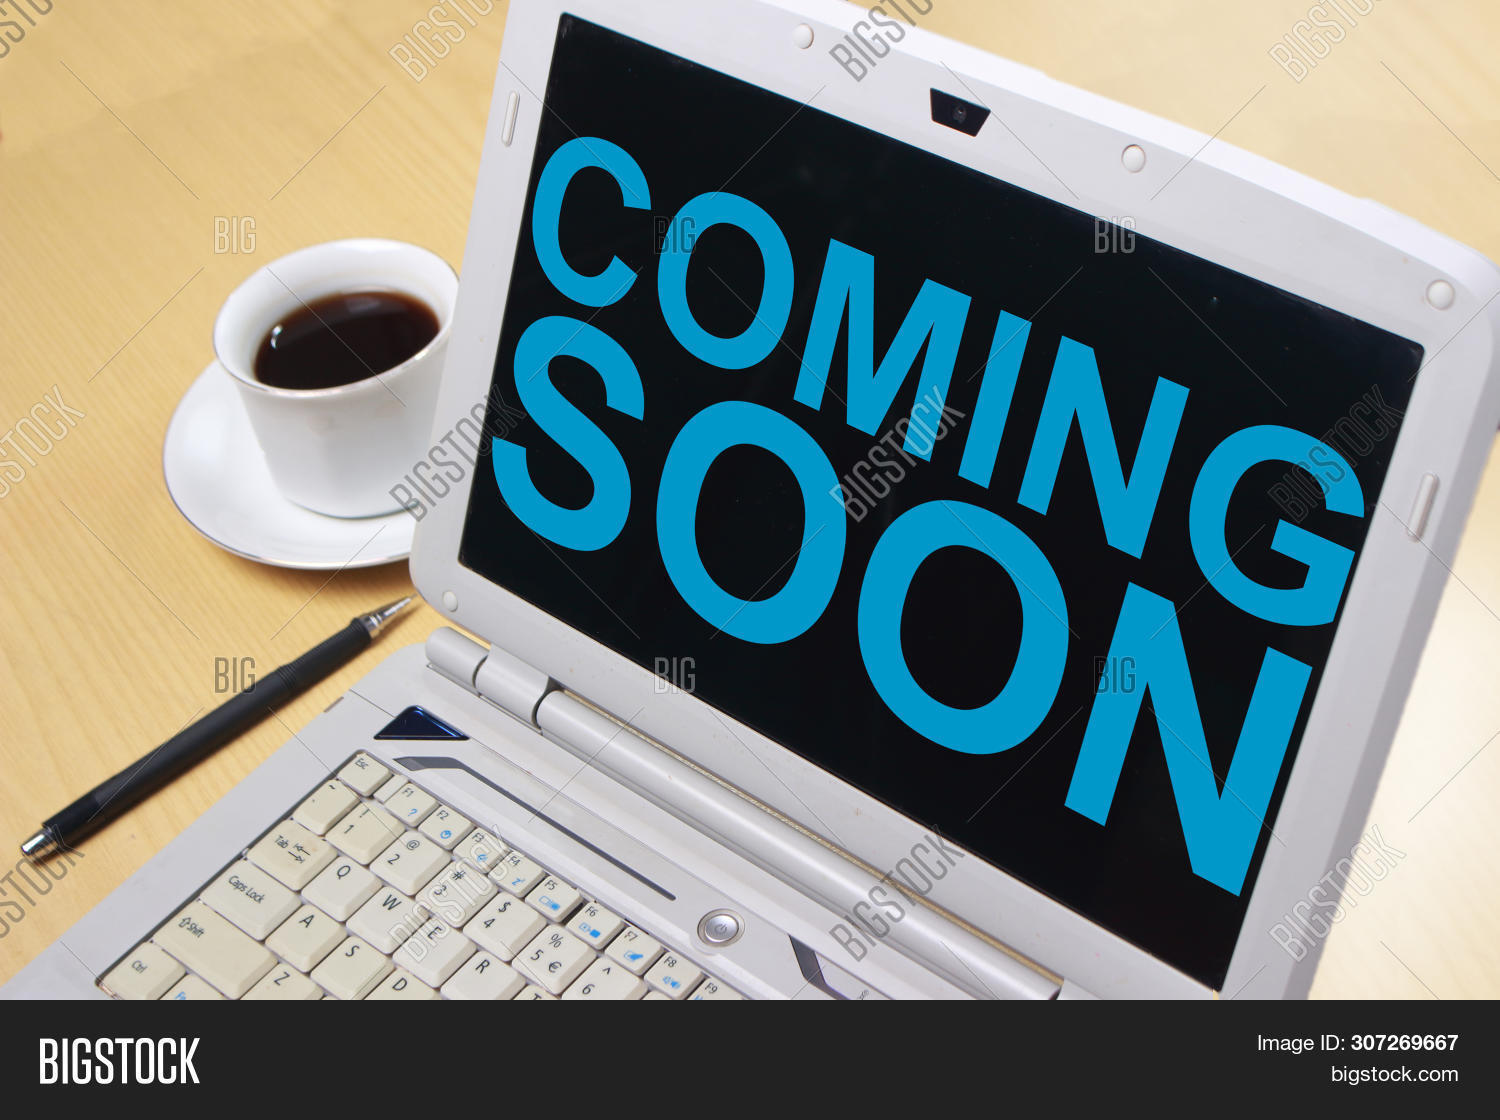 Coming Soon Image Photo Free Trial Bigstock